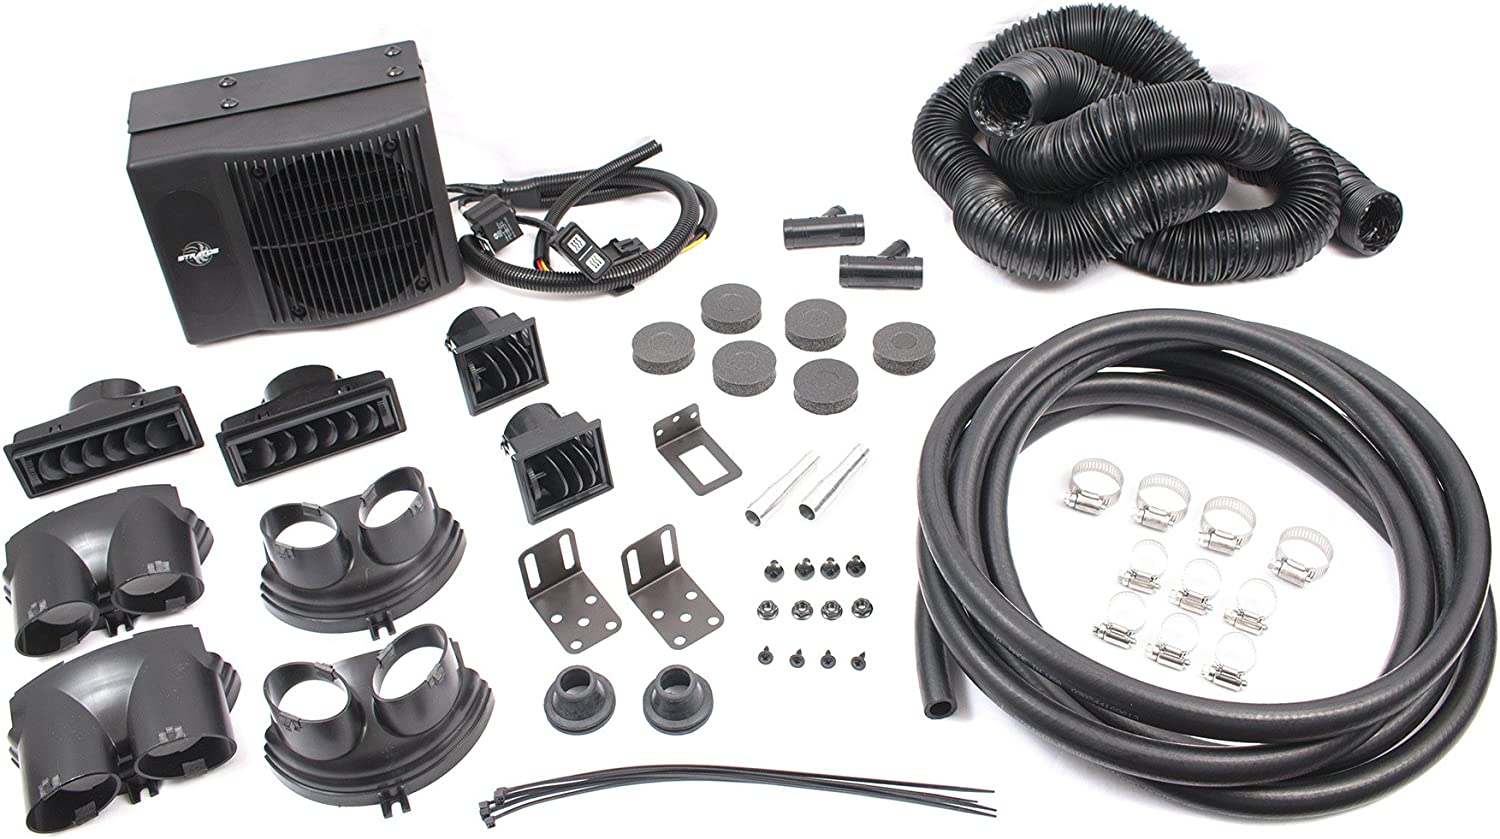 Stratos SCP5200 Cabin Heater Kit with 5 Single Axial 12V Fan /& Straight Grill Cover